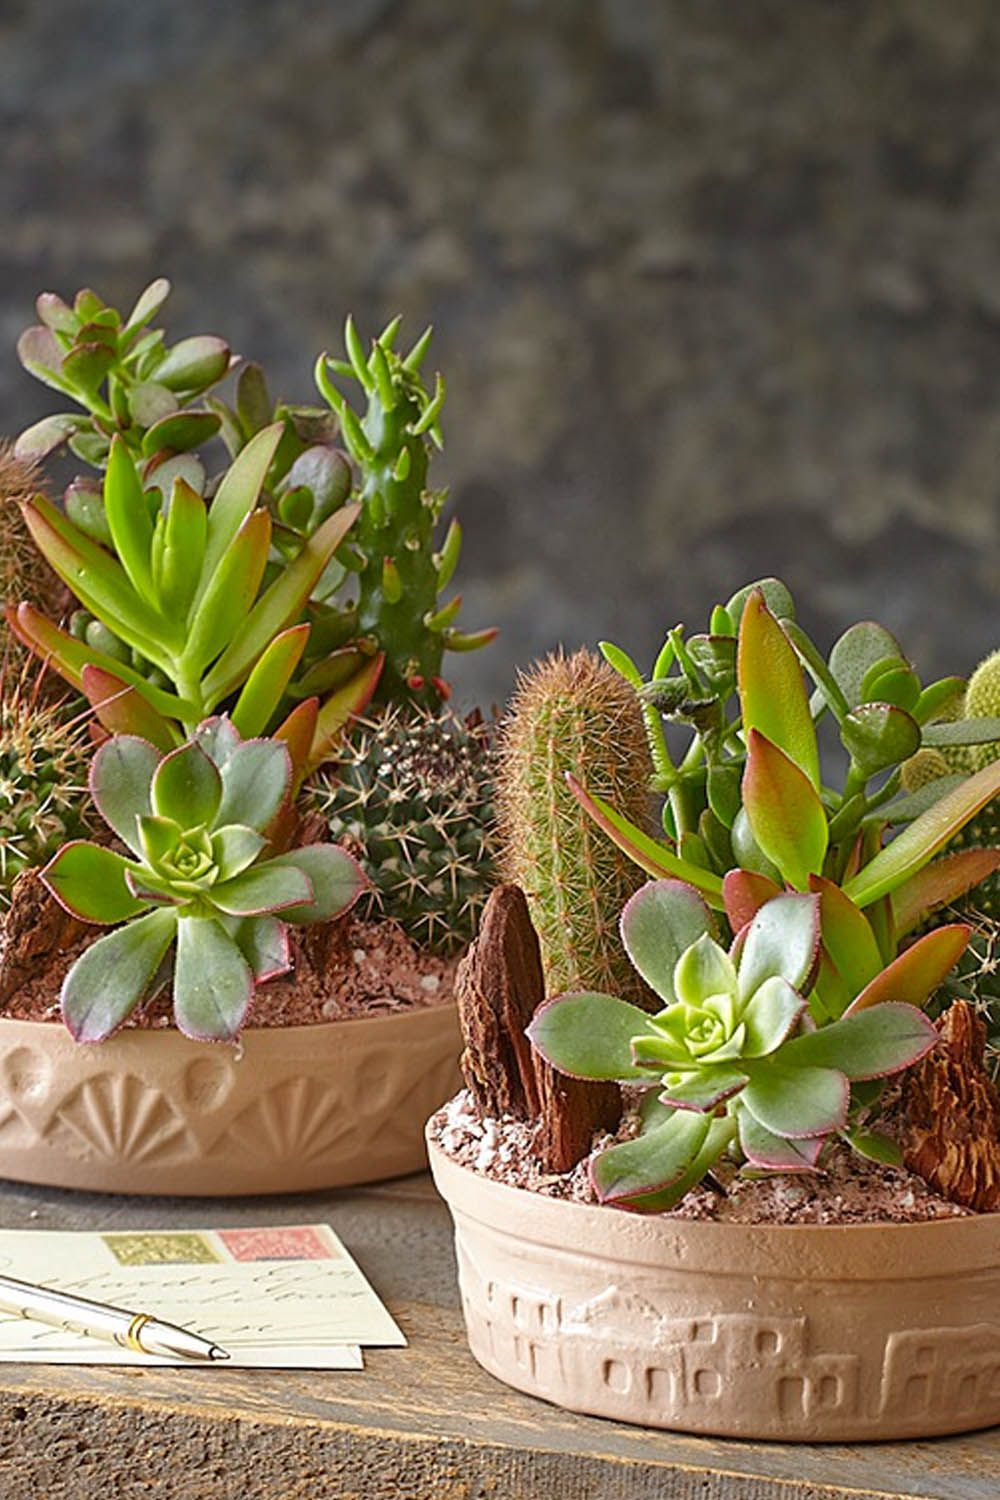 What To Buy For Housewarming Party Cactus Dish Garden